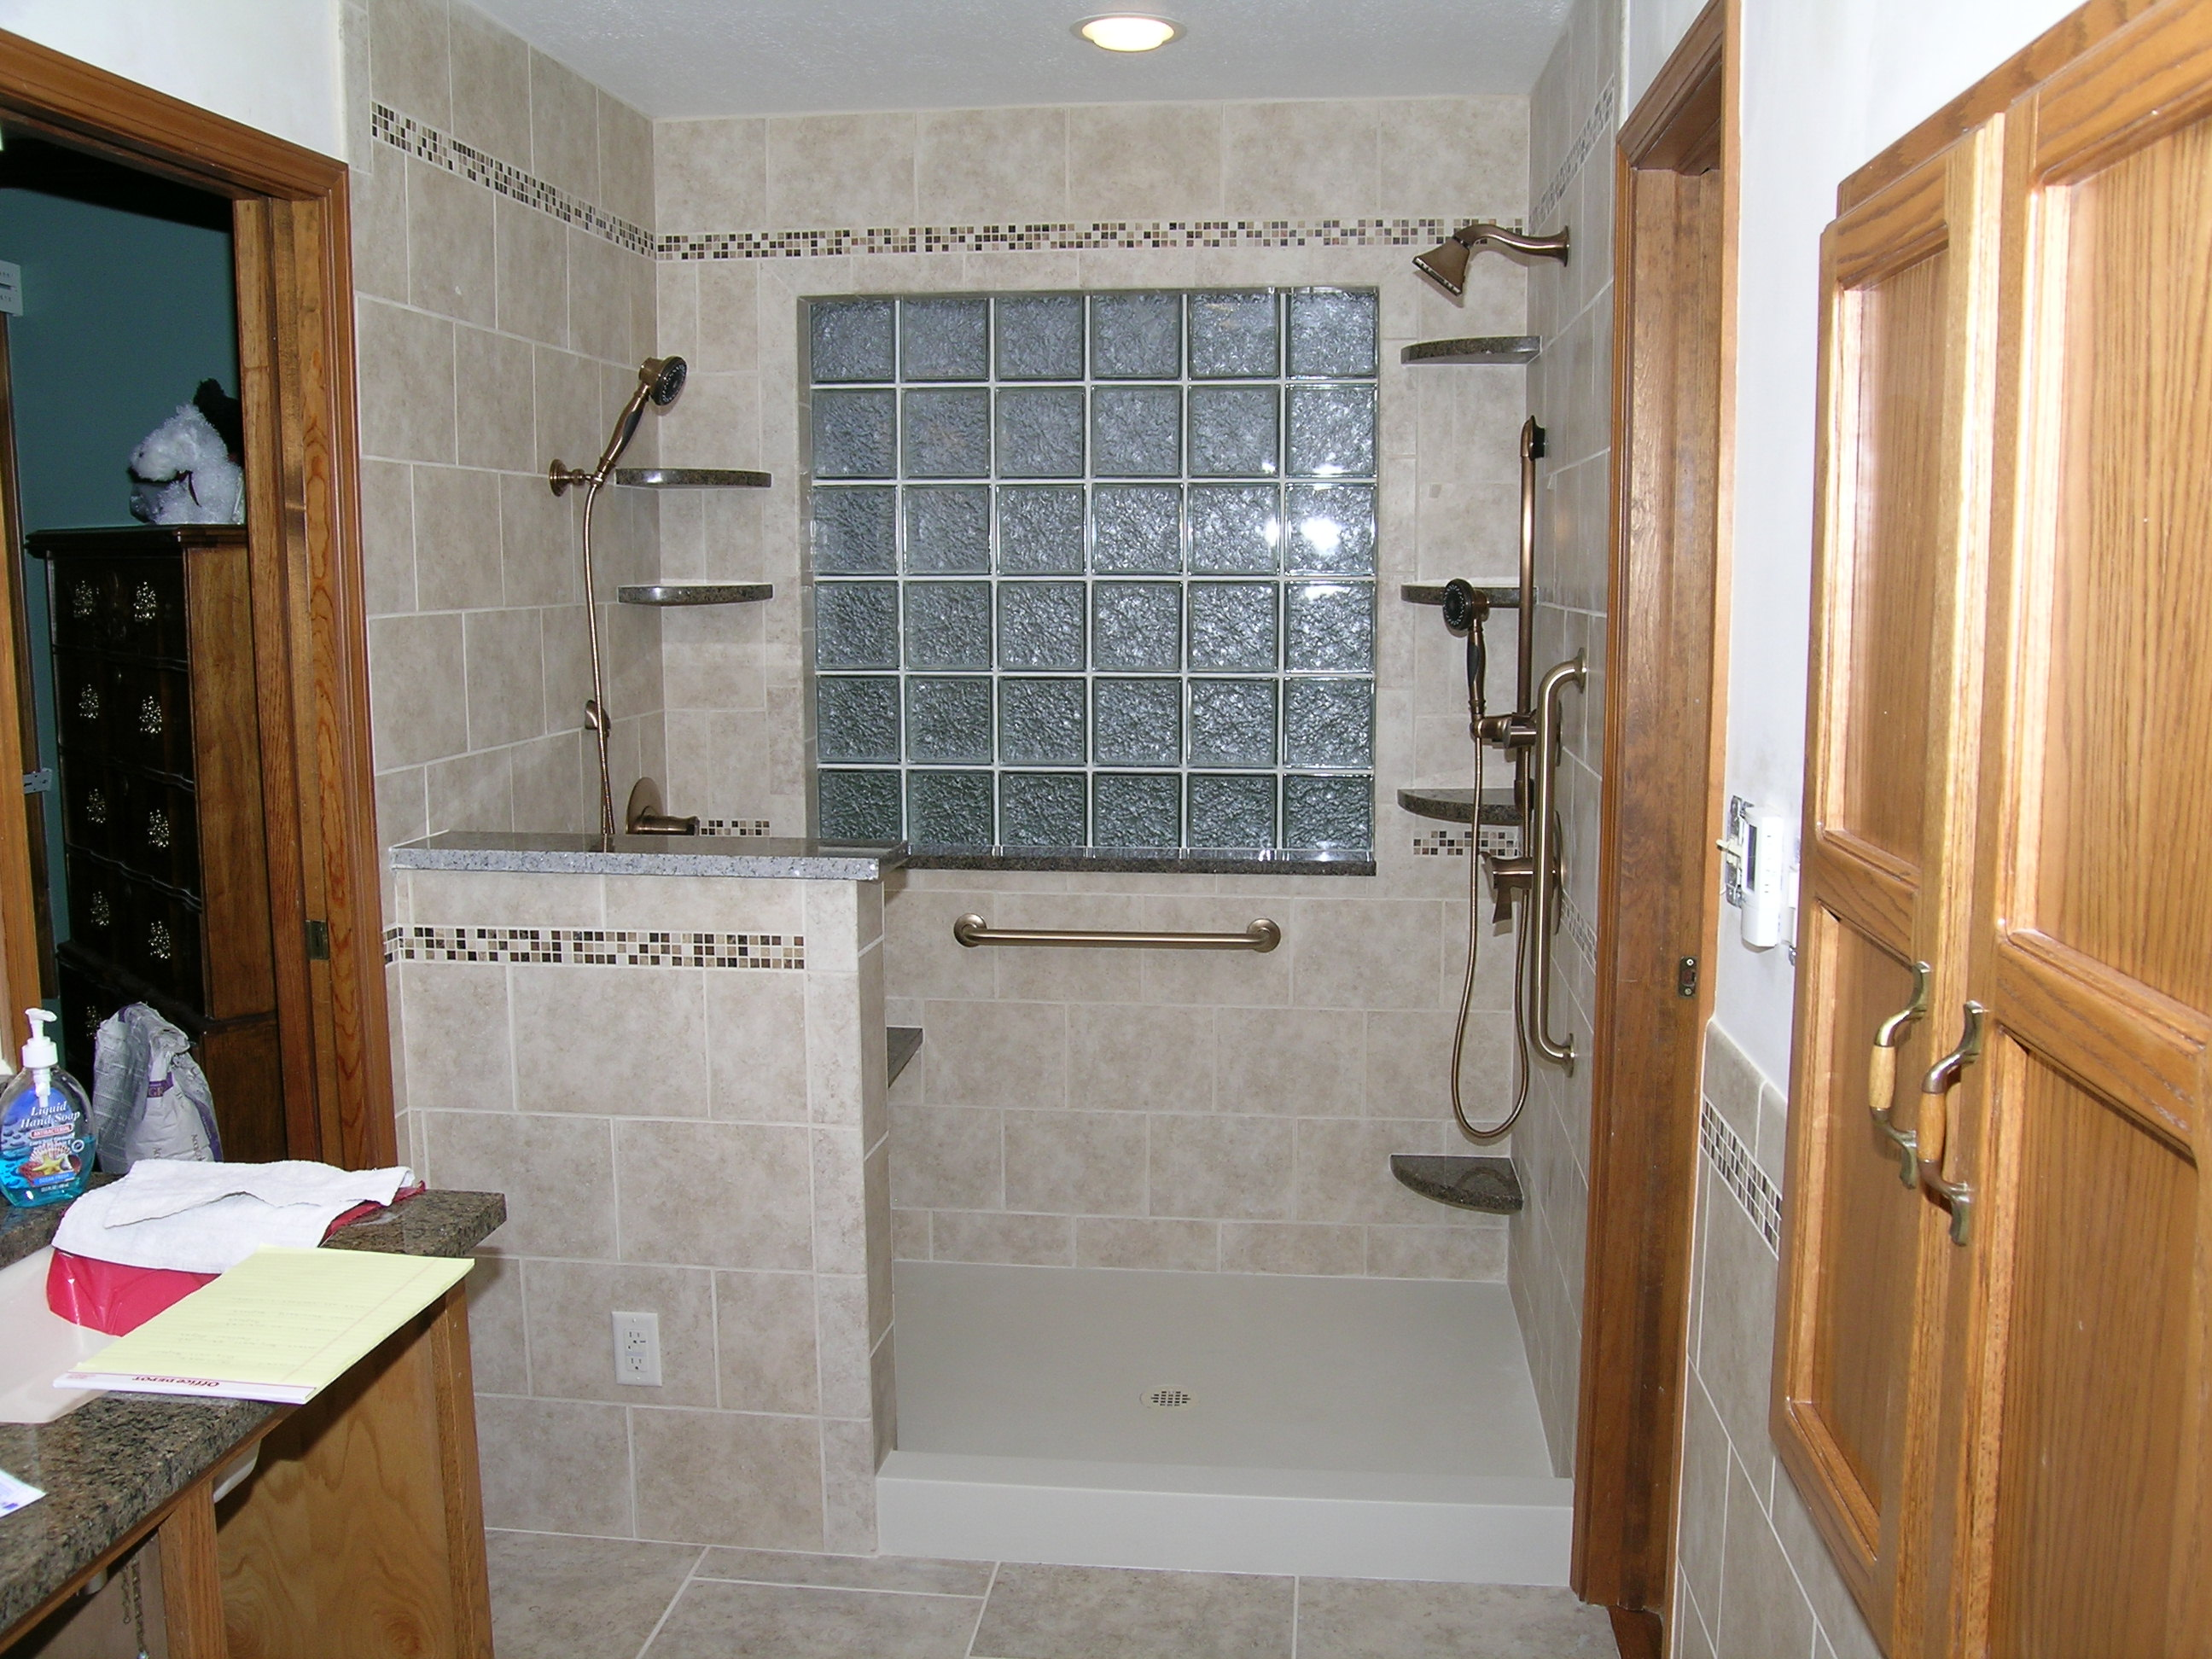 Updike bathroom remodeling indianapolis in 46227 for Bathroom remodel indianapolis